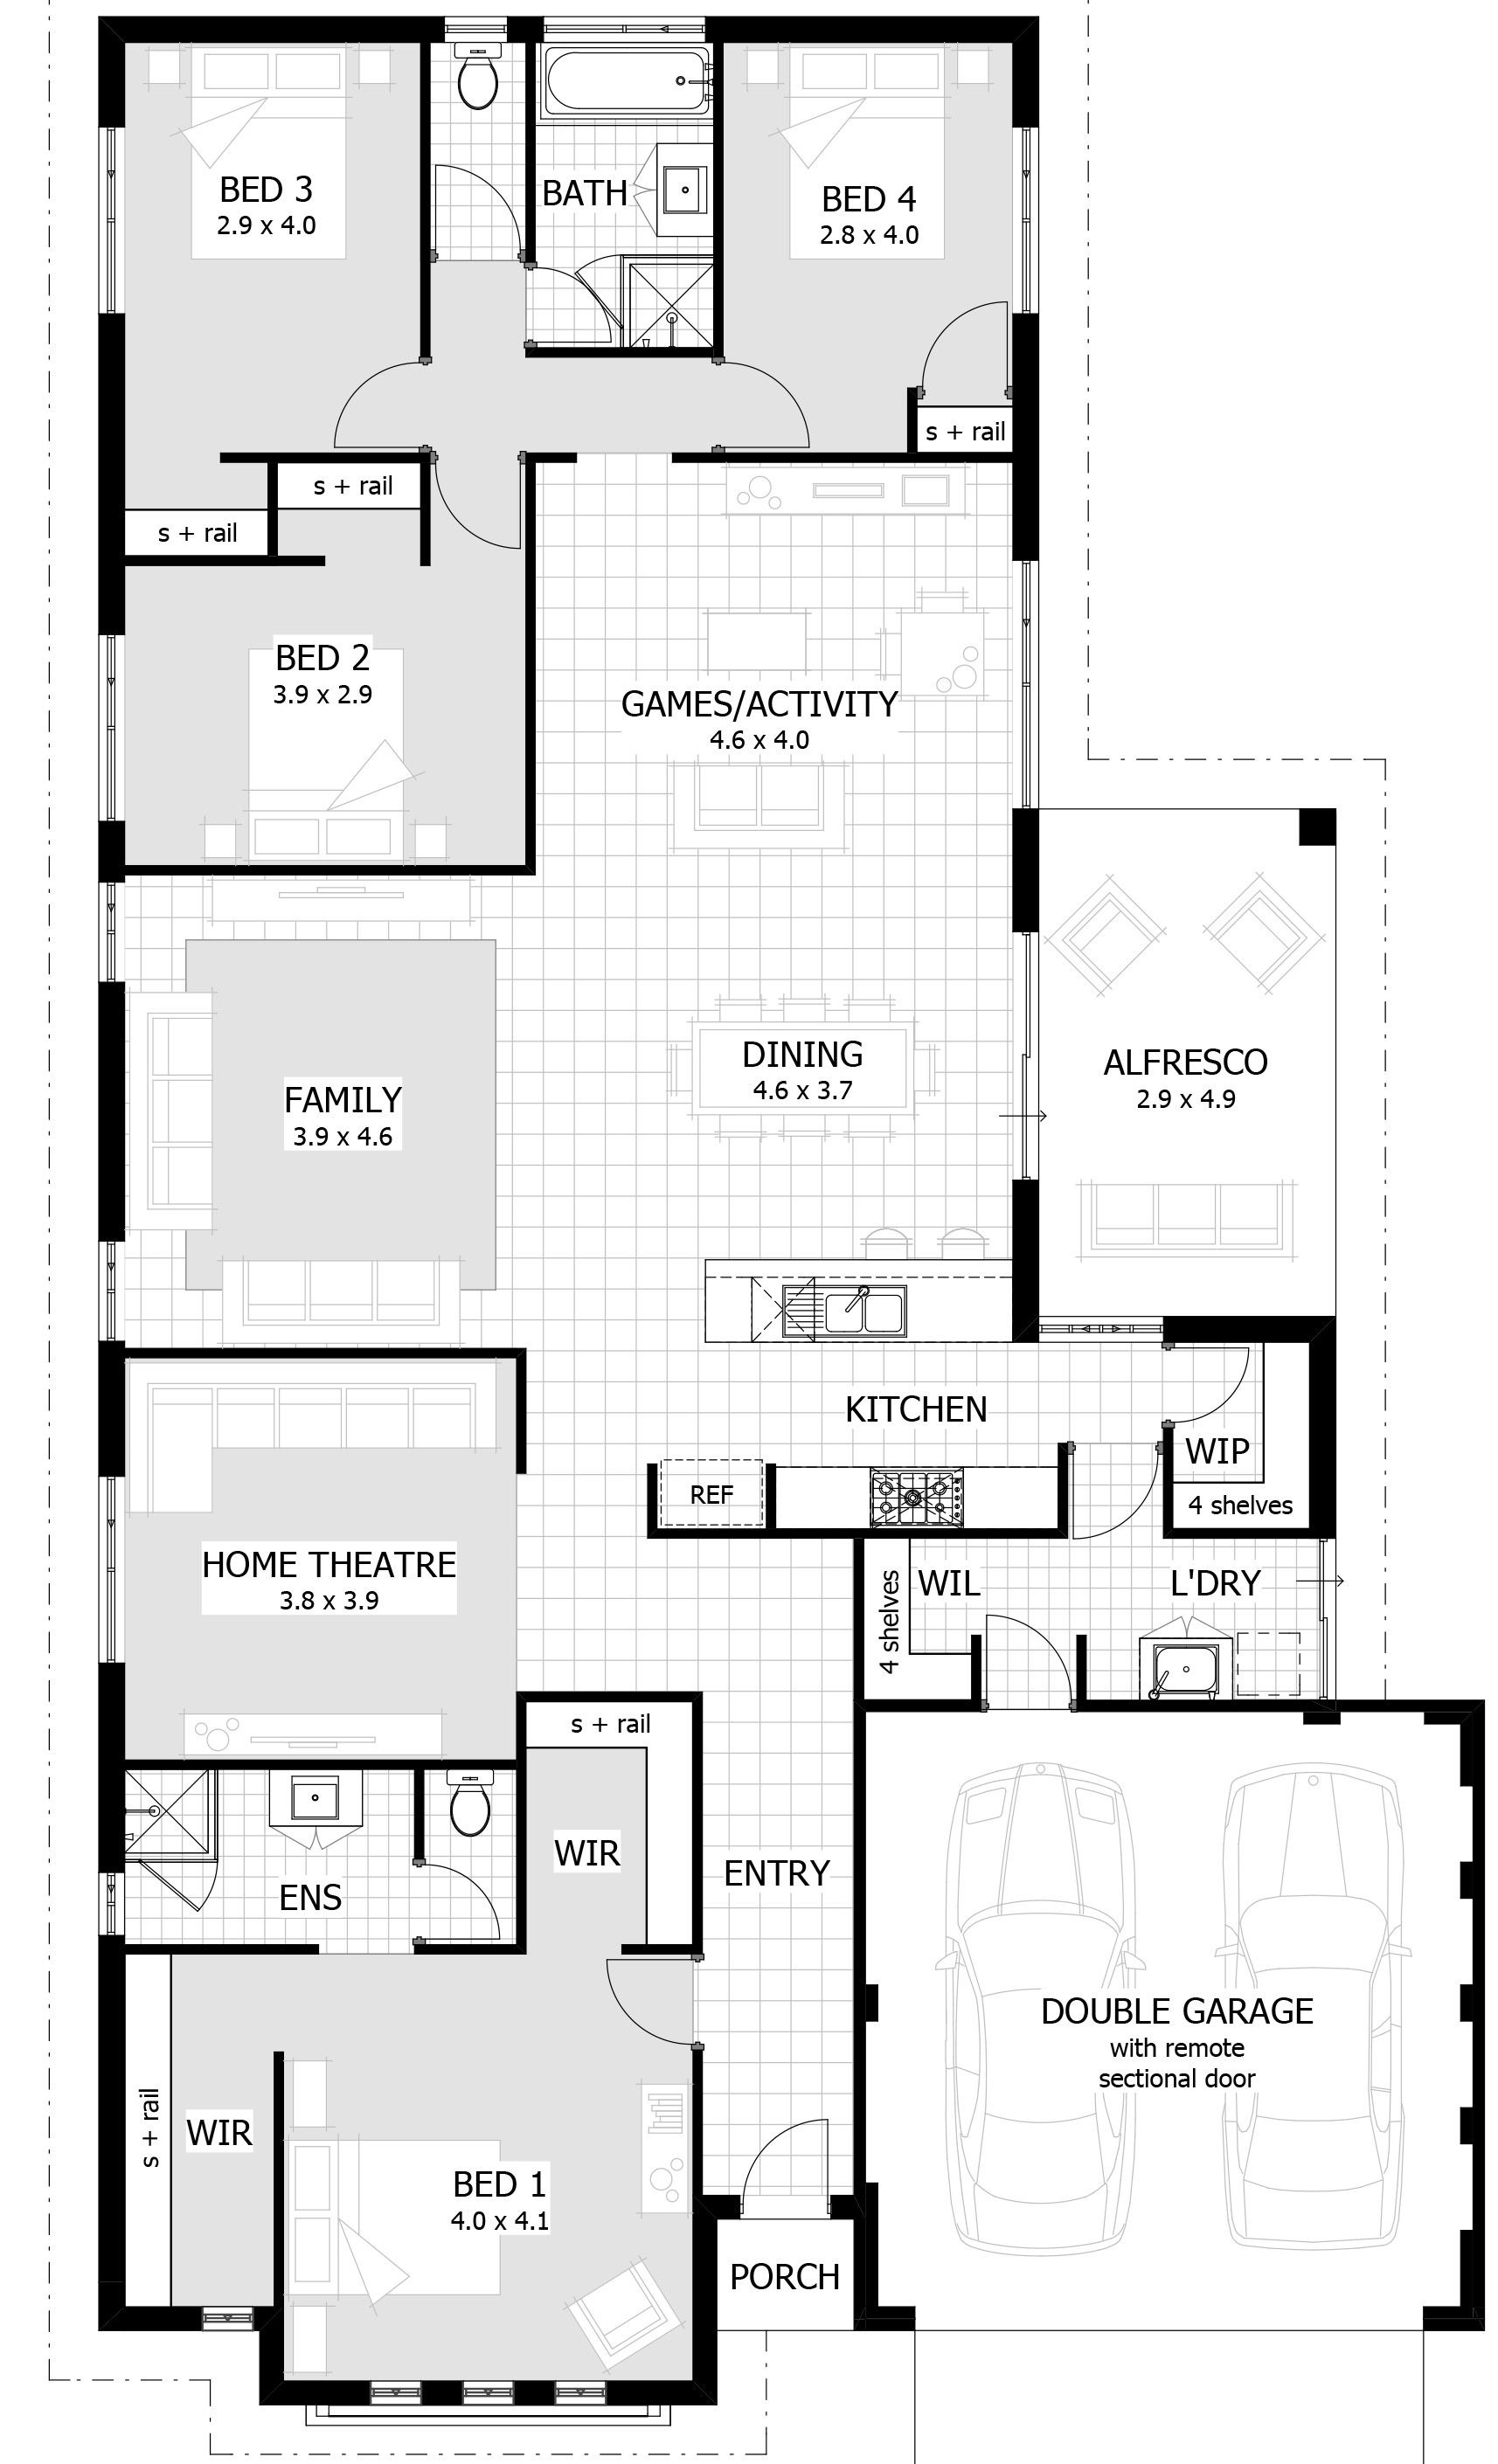 Simple House Plan software Best Of 15 Metre Wide Home Designs Con Imágenes